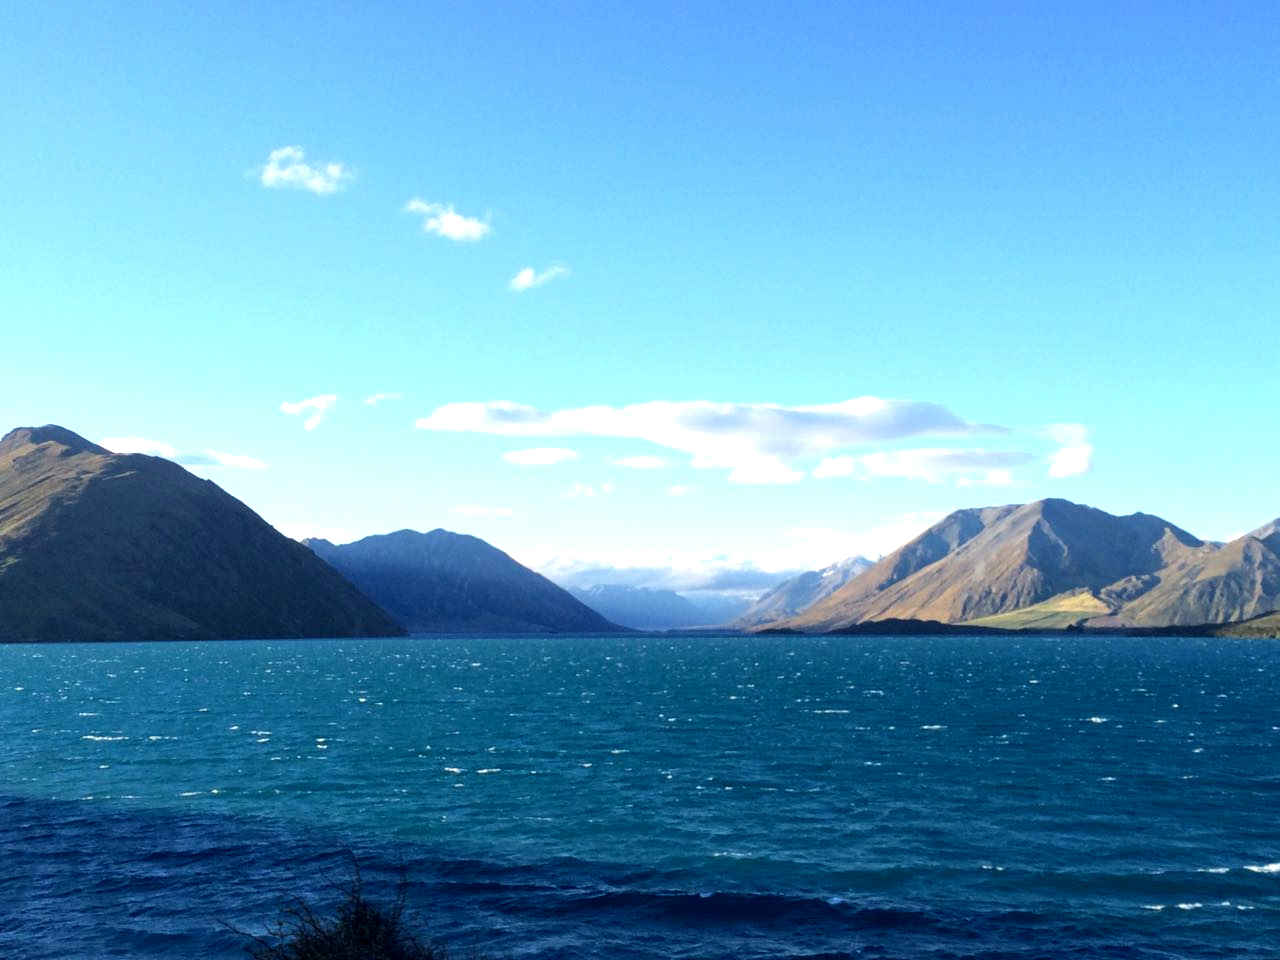 Lake Coleridge from the hydroelectric power station.